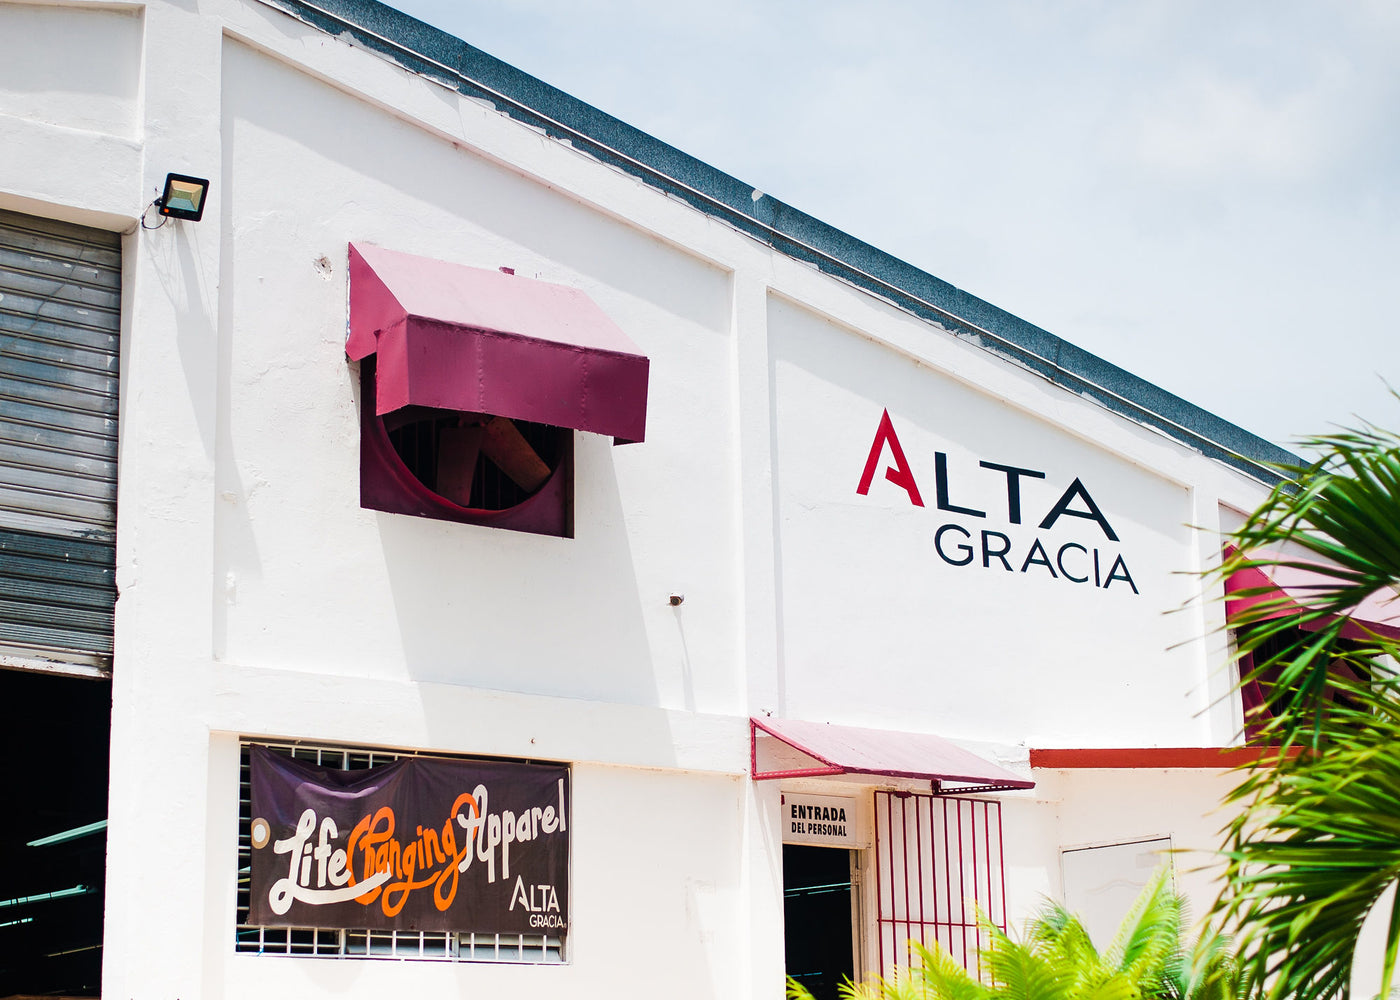 At Alta Gracia, we make clothes the right way in our sweatshop-free, Dominican Republic factory.